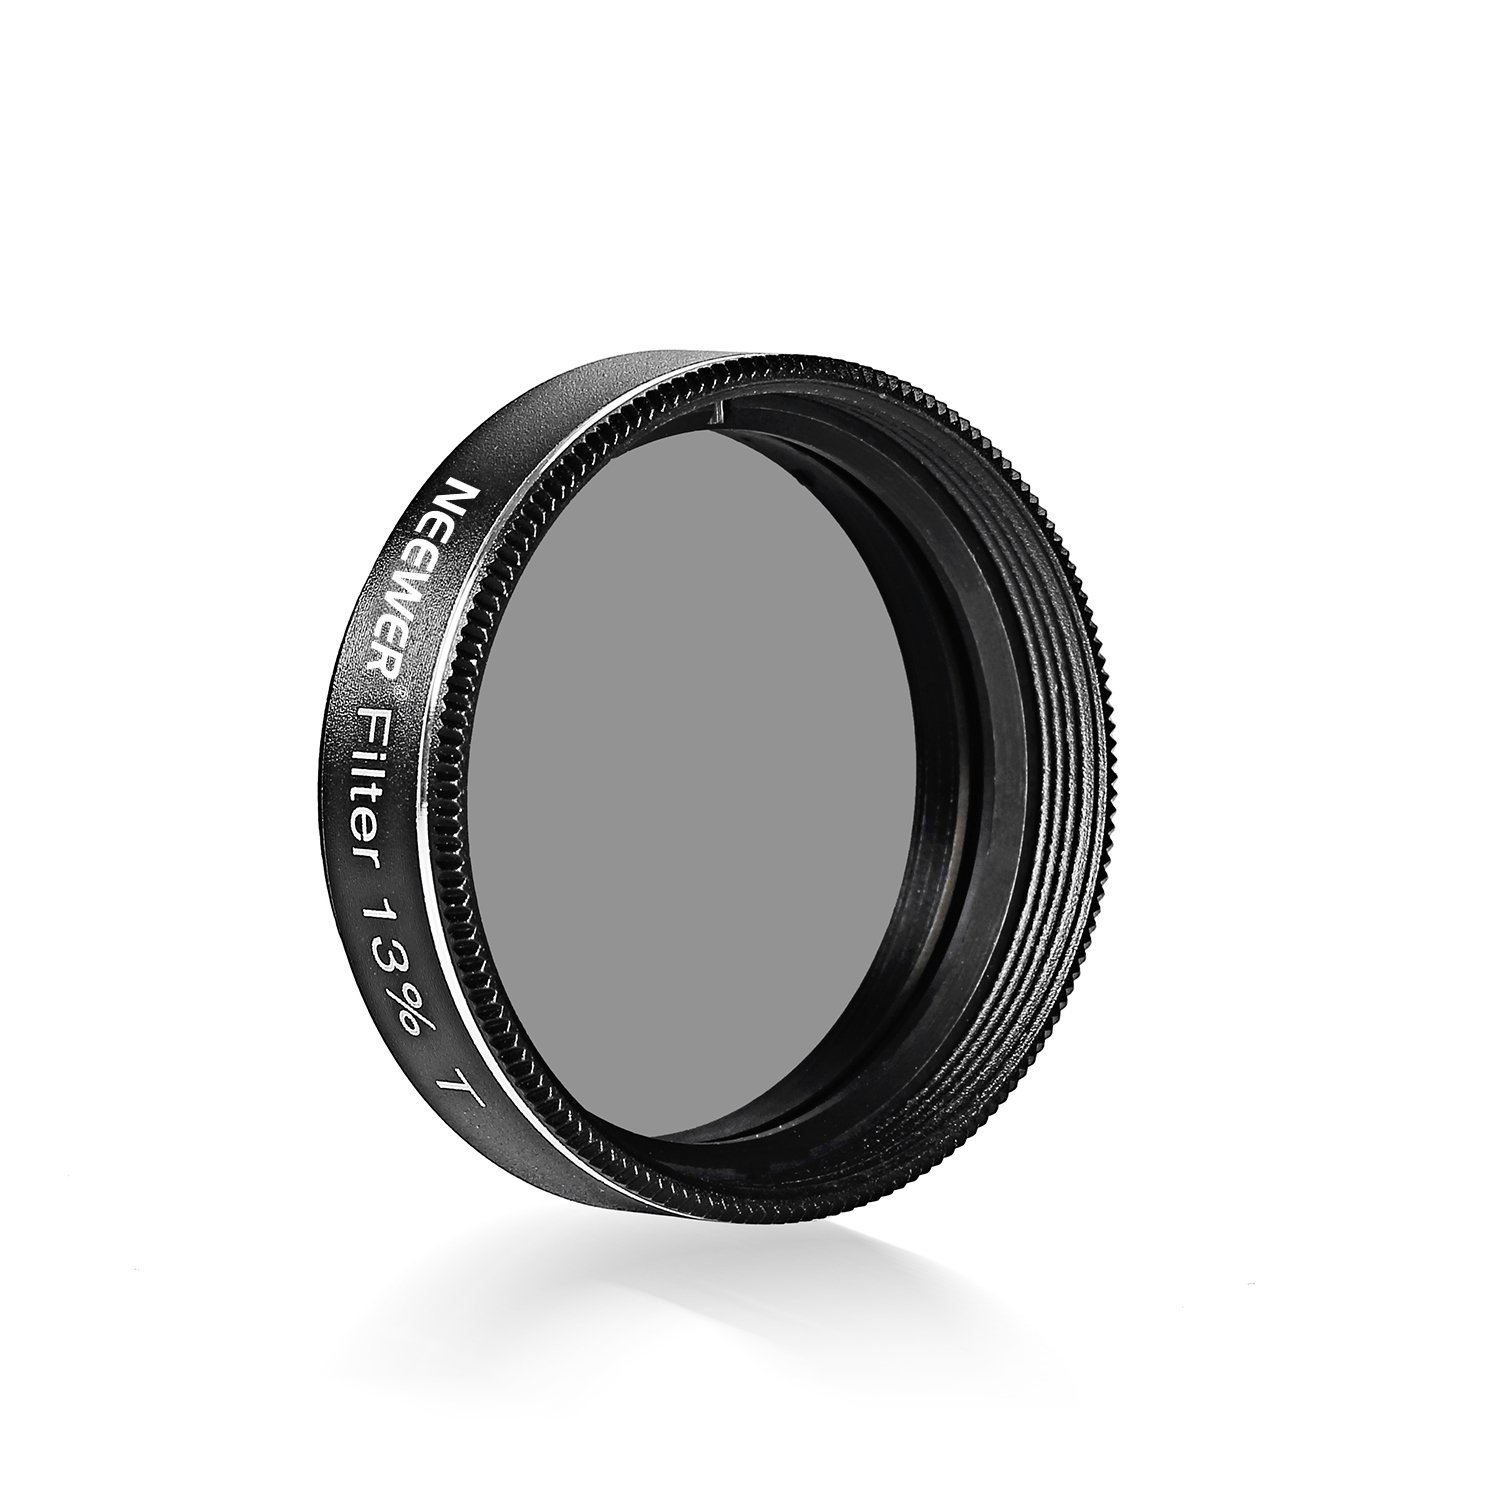 Neewer 1.25 inches 13 Percent Transmission Neutral Density Moon Filter, Aluminum Frame Plastic Thread Optical Glass Telescope Eyepiece Filter Helping Reduce Overall Brightness and Irradiation (Black) by Neewer